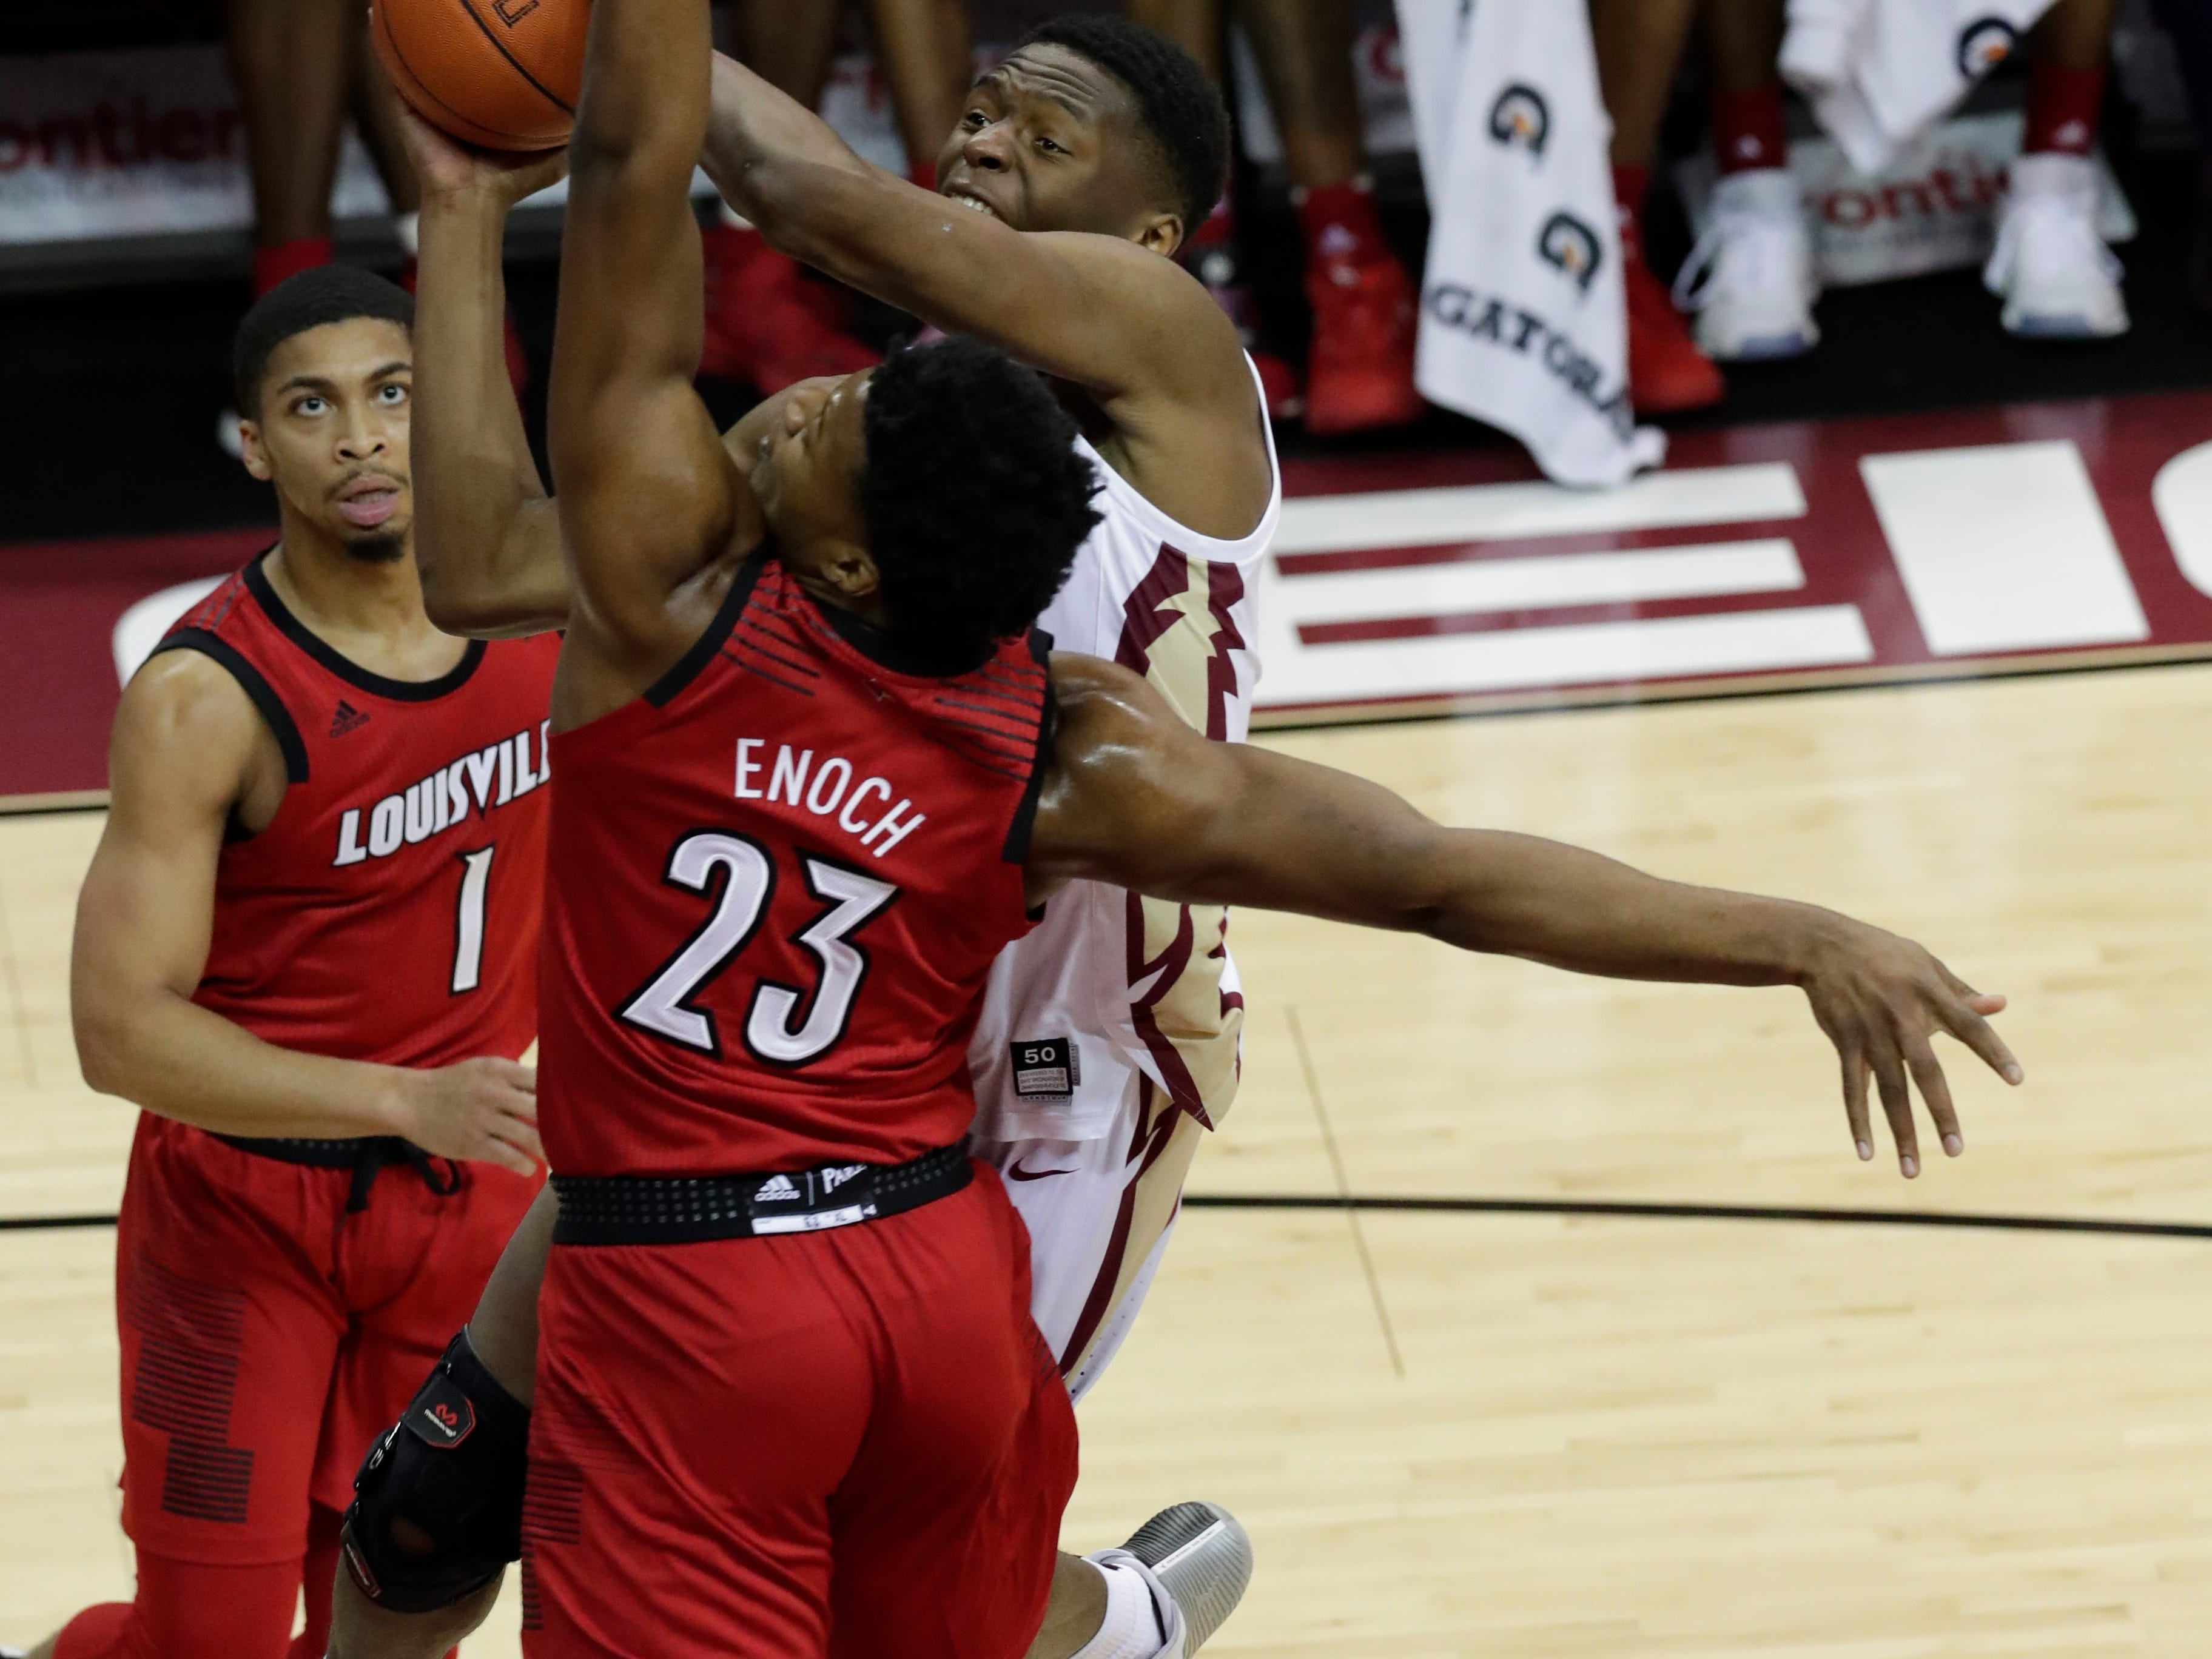 Florida State Seminoles forward Mfiondu Kabengele (25) drives in a layup with Louisville Cardinals center Steven Enoch (23) blocking his shot. The Florida State Seminoles host the Louisville Cardinals at the Tucker Civic Center, Saturday Feb. 9, 2019.